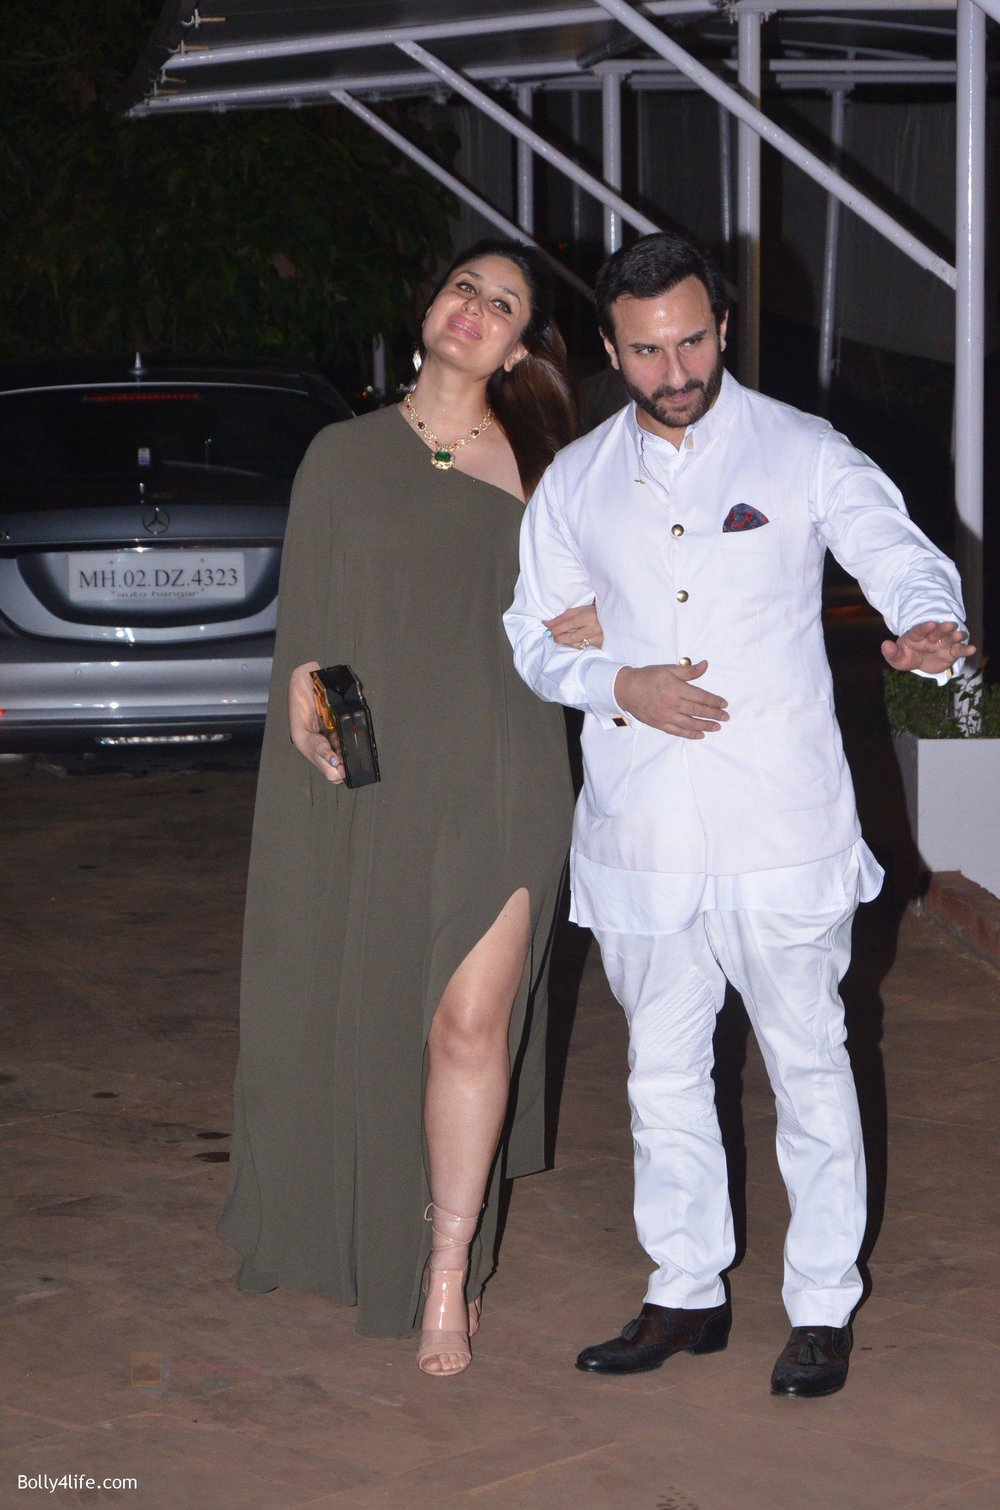 Saif-Ali-Khan-Kareena-Kapoor-at-Reema-jain-bday-party-in-Amadeus-NCPA-on-28th-Sept-2016-869.jpg